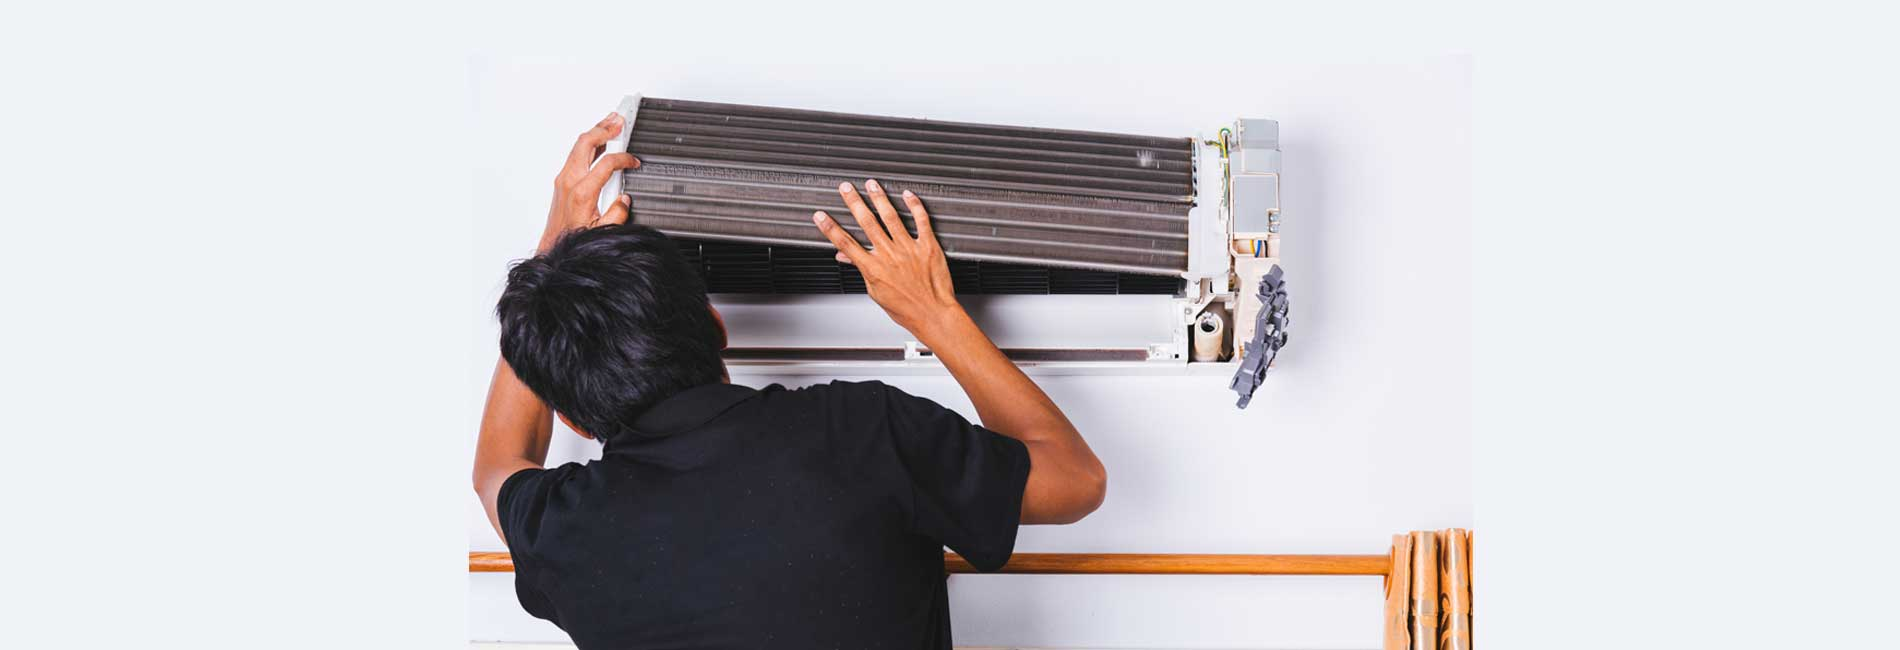 Split AC Uninstallation in Kanathur